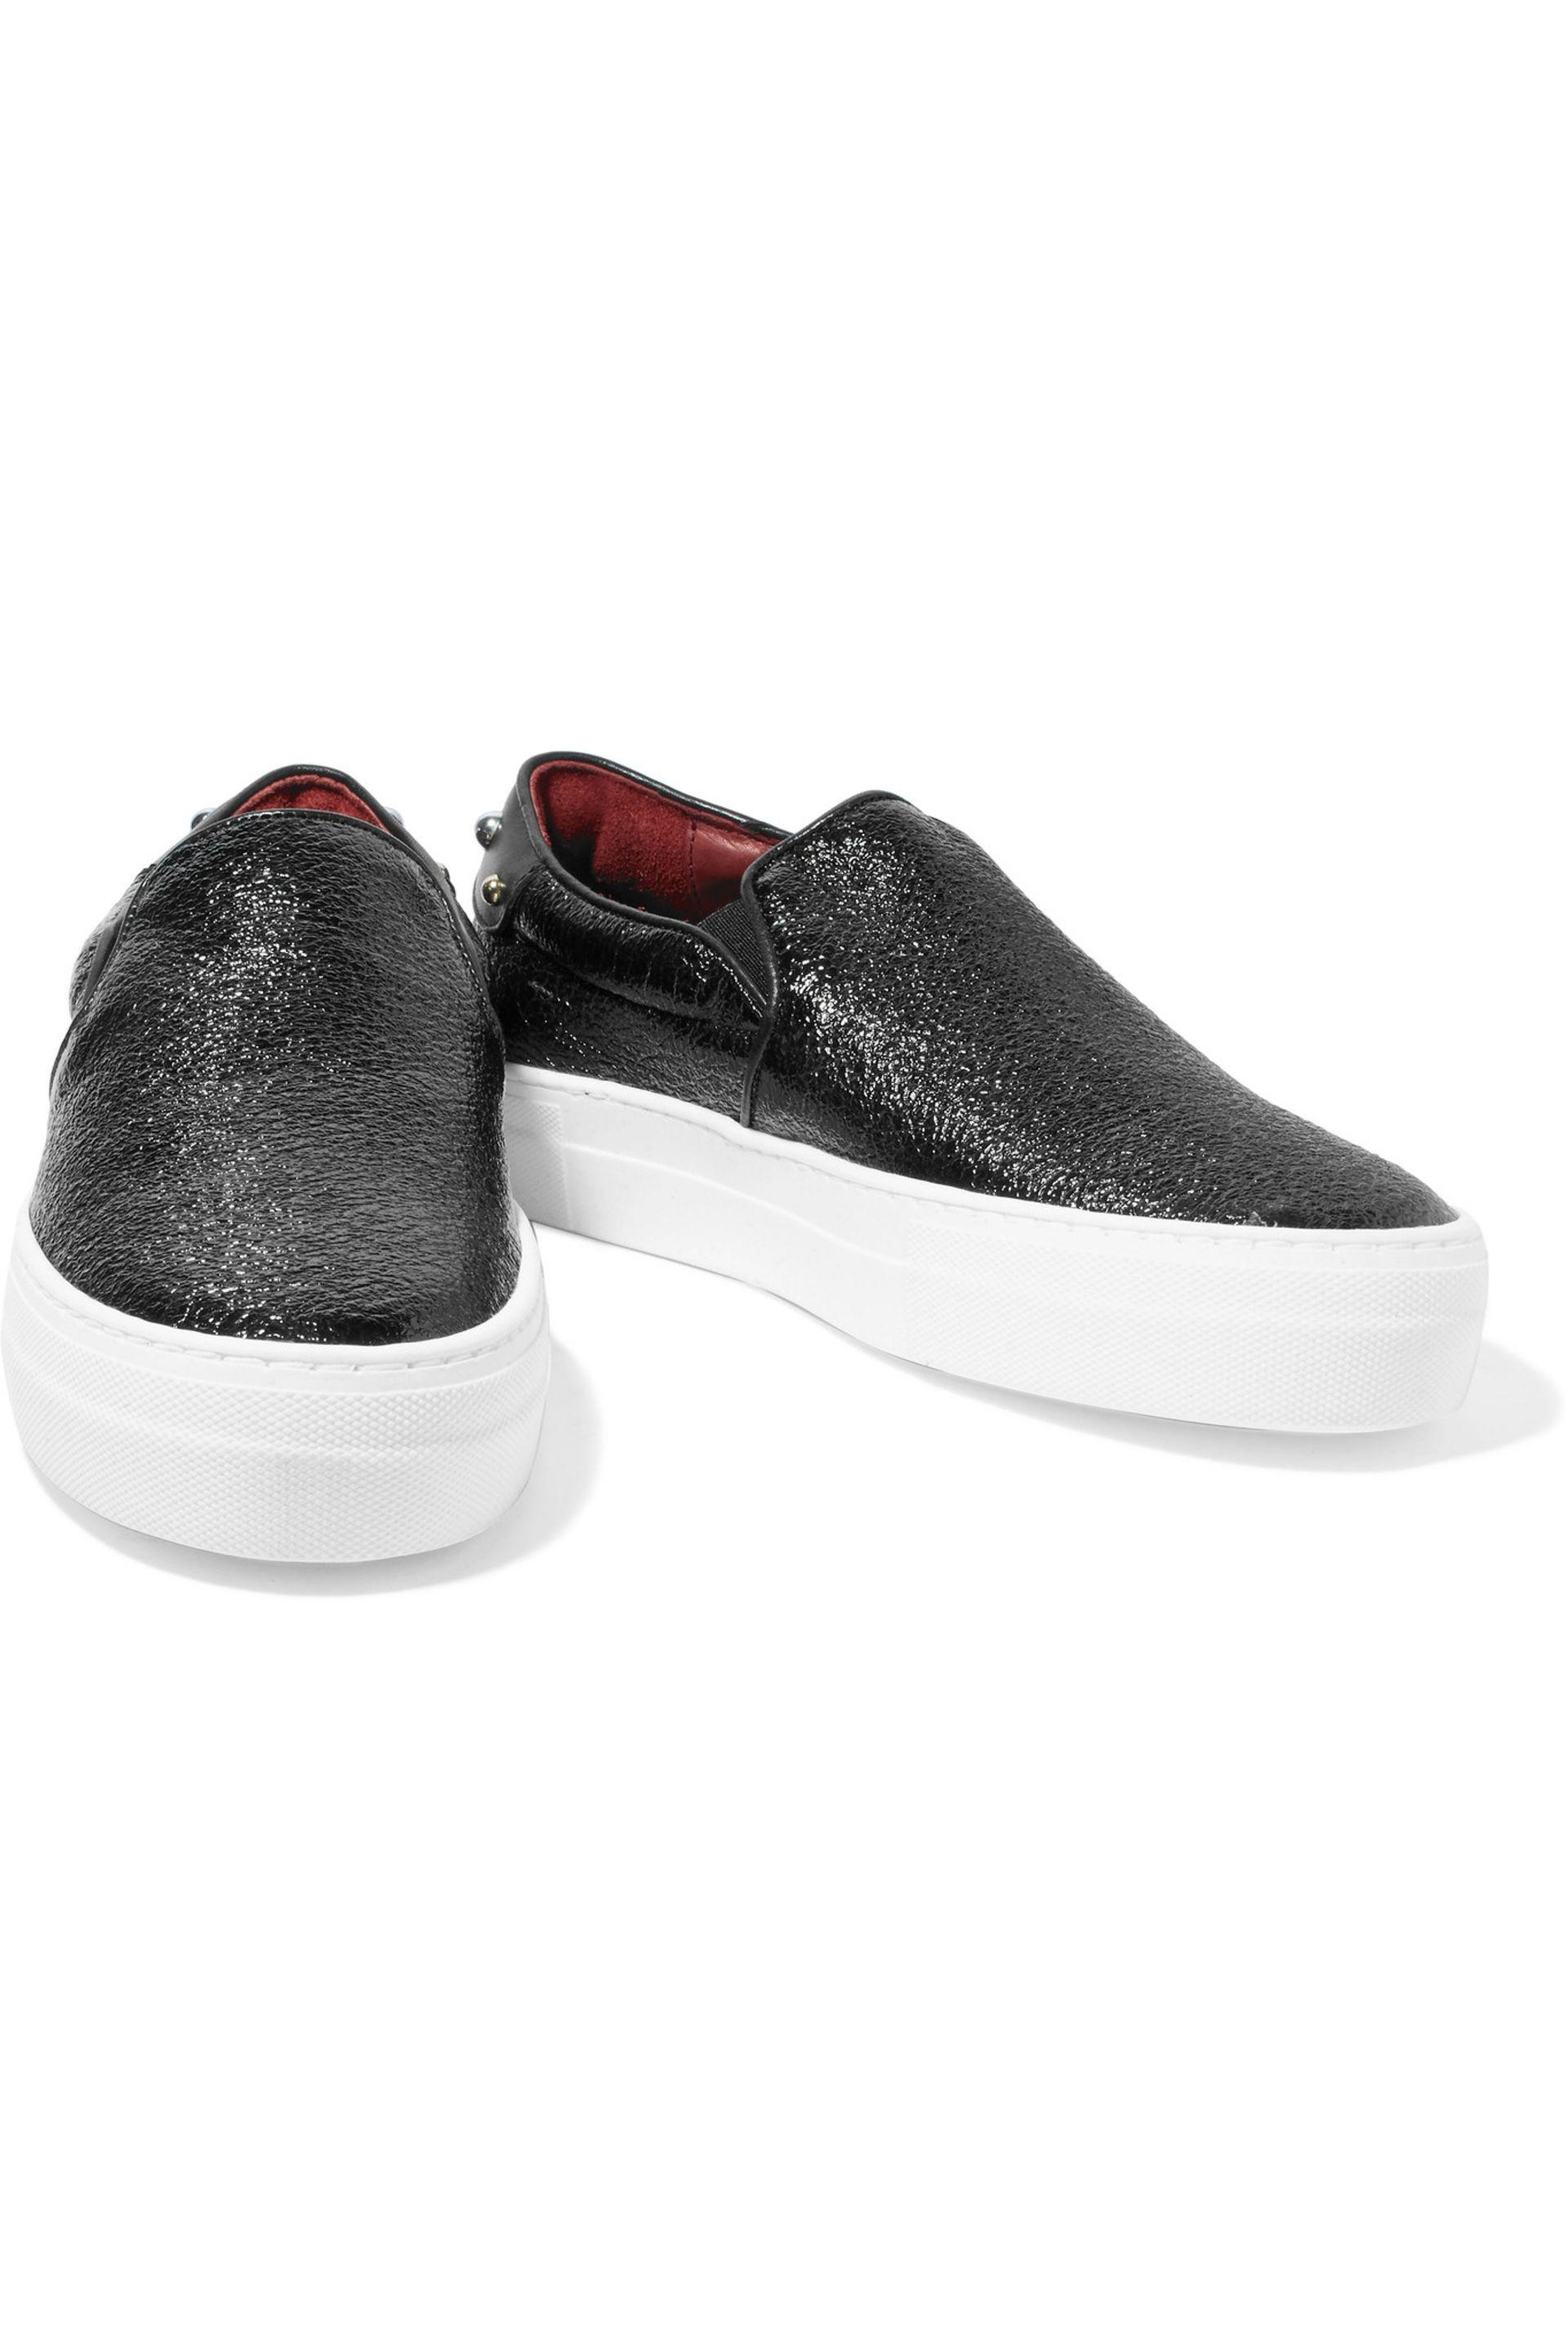 Maje Studded Cracked-leather Slip-on Sneakers in Black